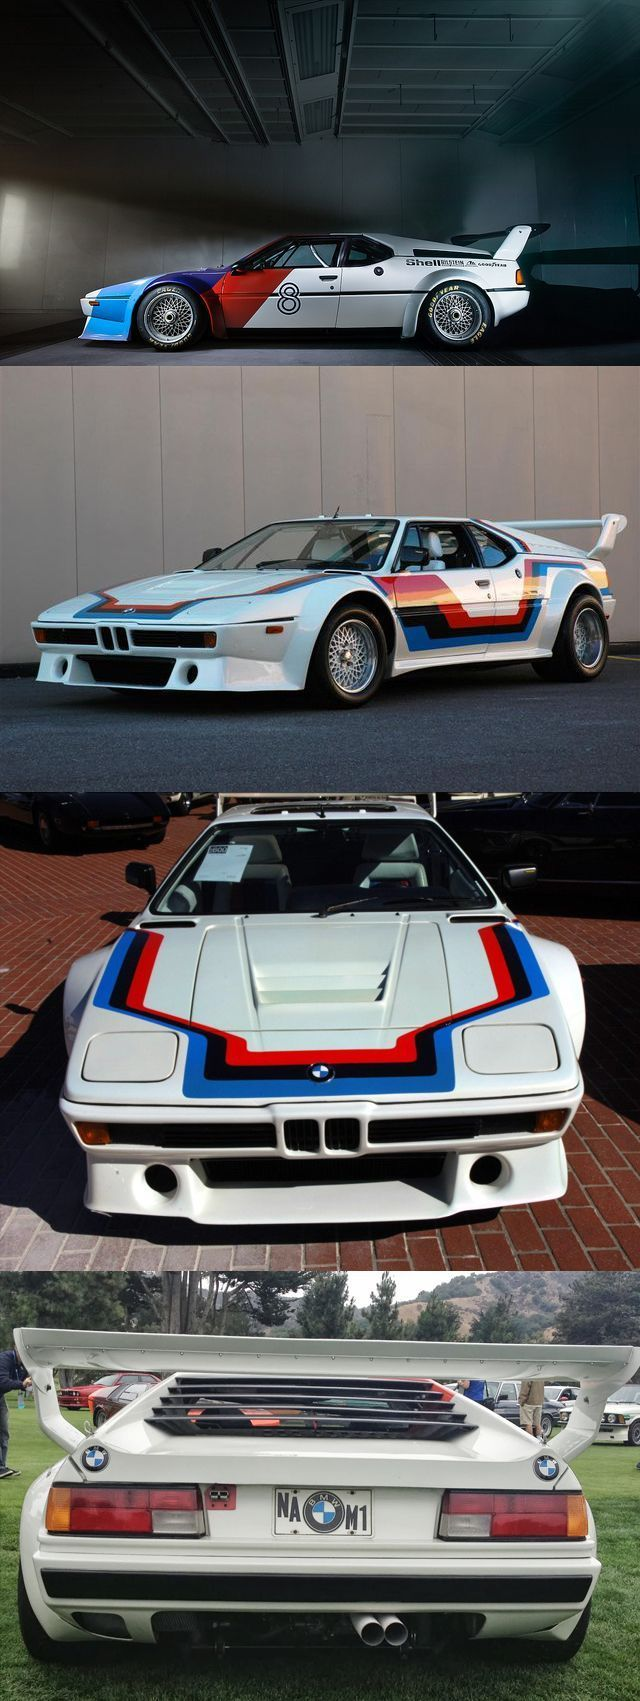 Still the King of Sportscars and Racingcars: BMW M1 Procar Prostreet – Rafal Janowski